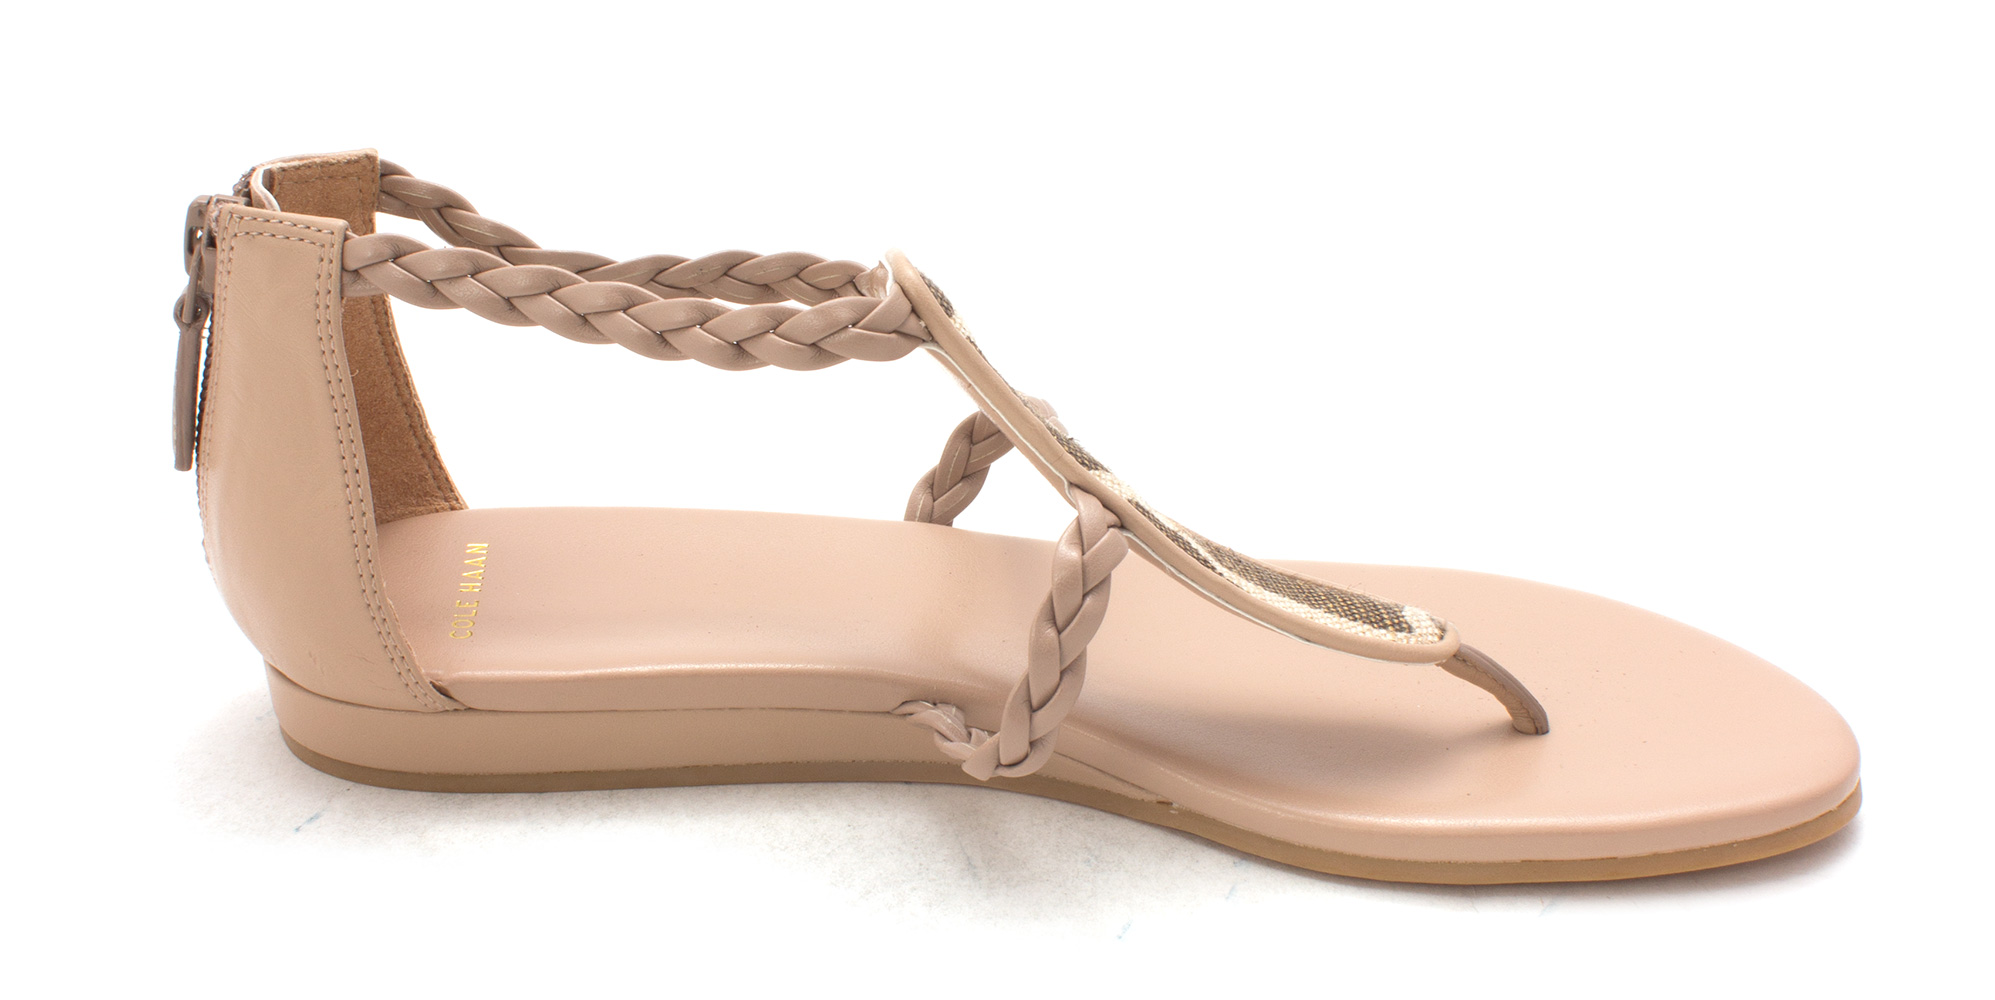 Cole Haan Womens Paulasam Open Toe Casual T-Strap Sandals, Nude, Size 6.0